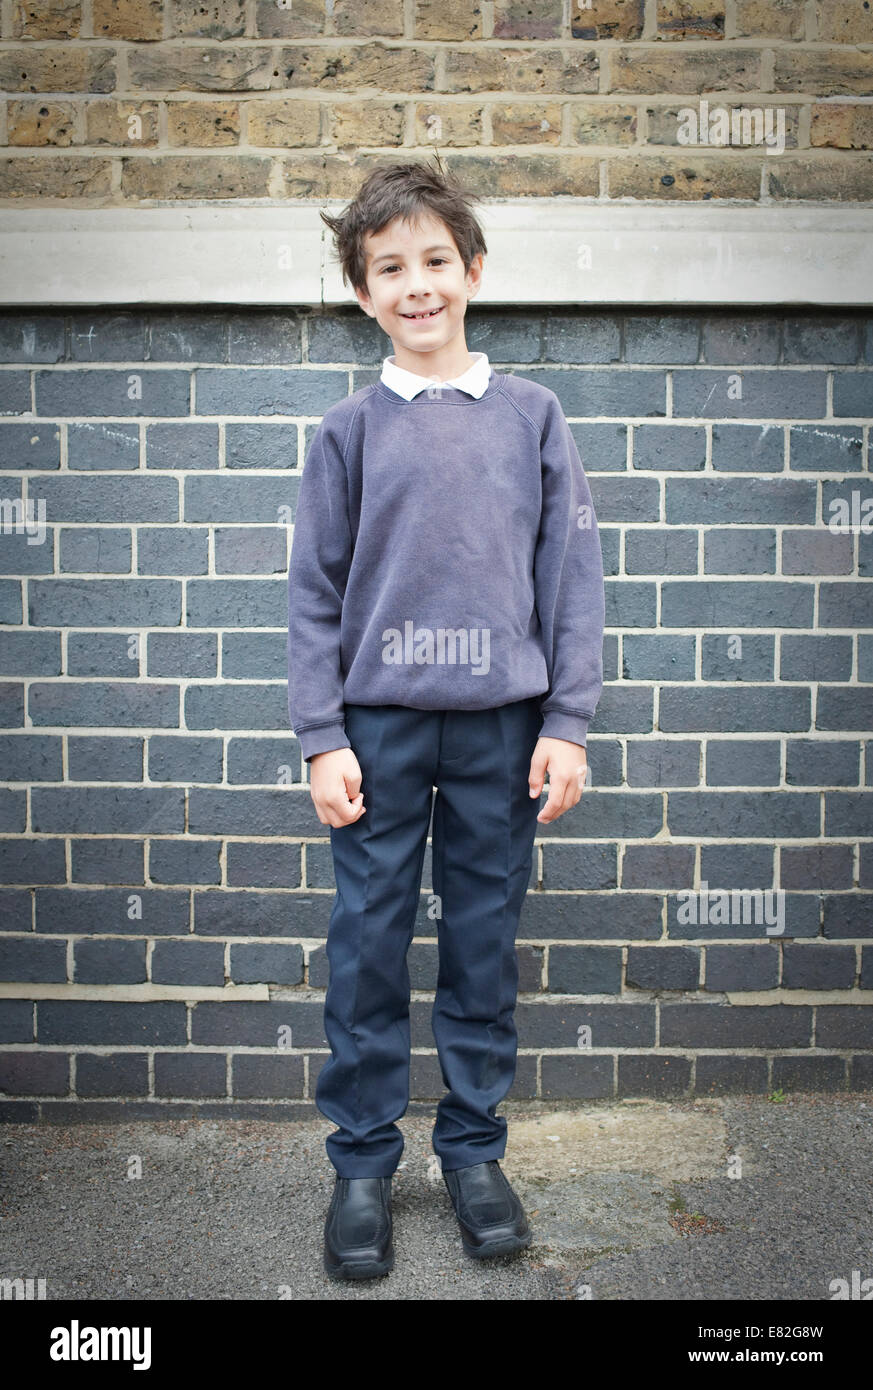 Portrait of boy in playground smiling towards camera - Stock Image